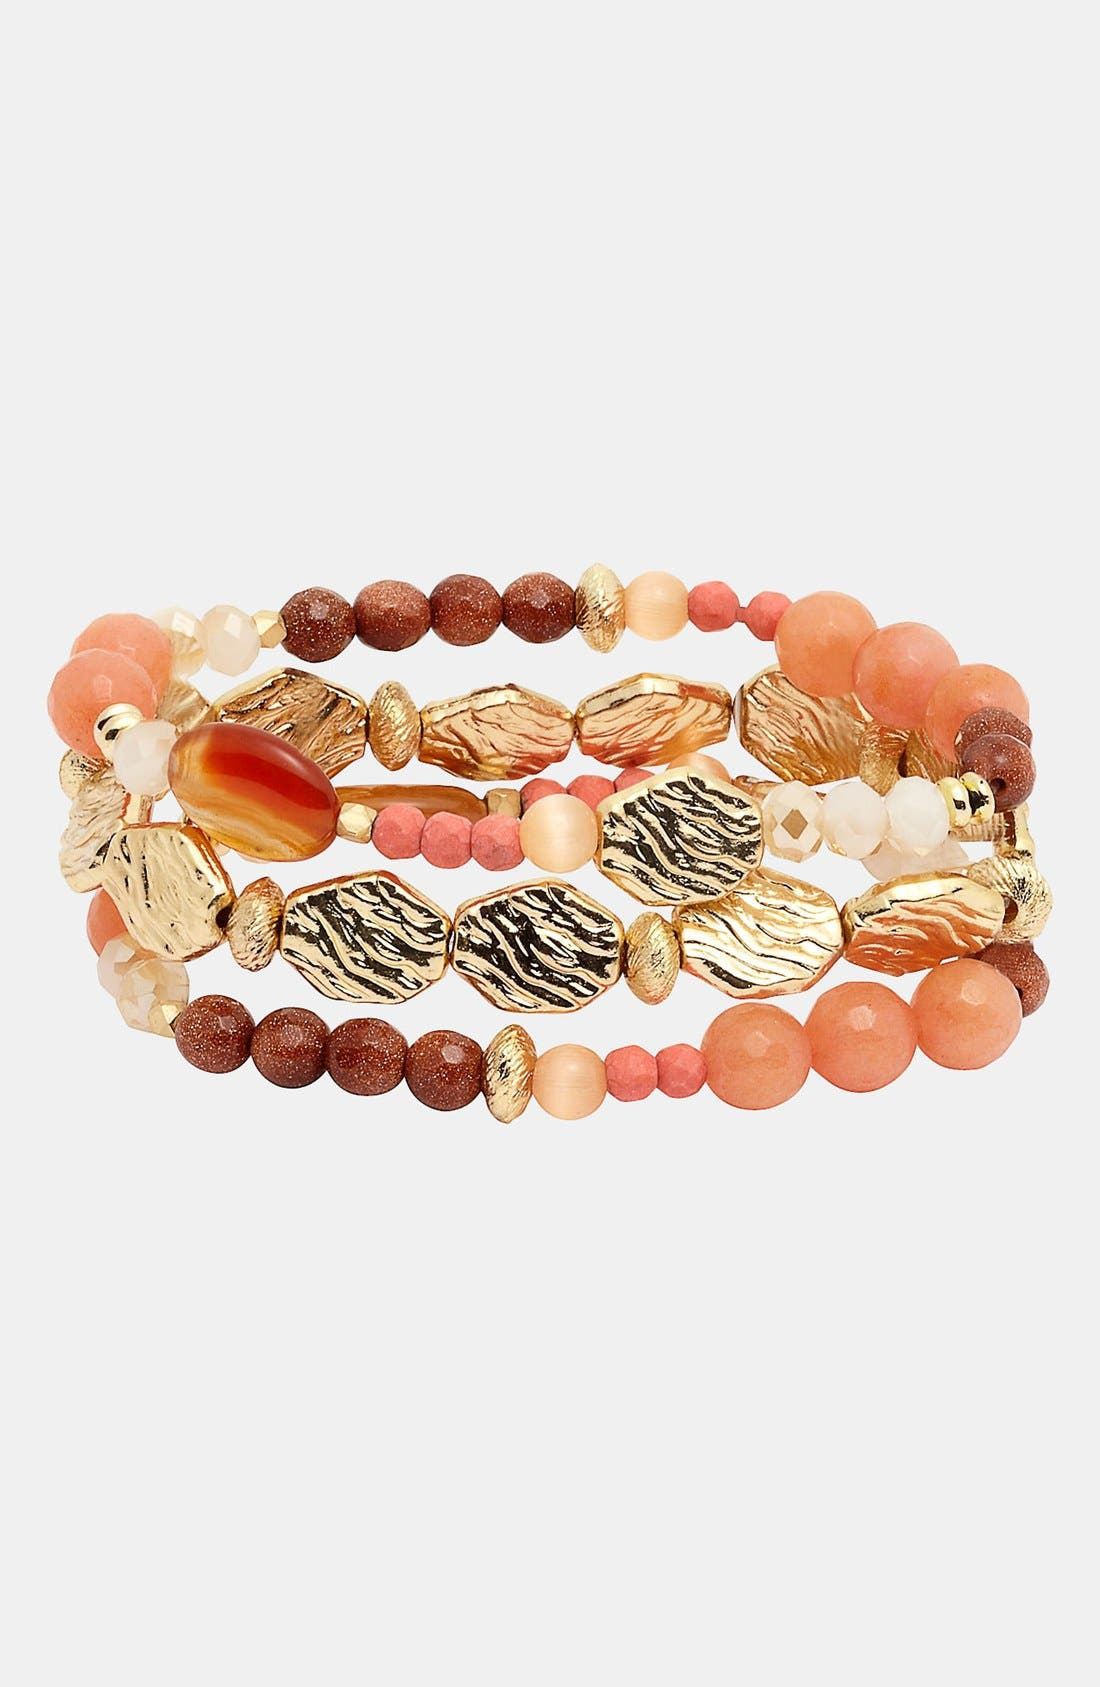 Main Image - Nordstrom 'Pebbles' Beaded Stretch Bracelets (Set of 3)